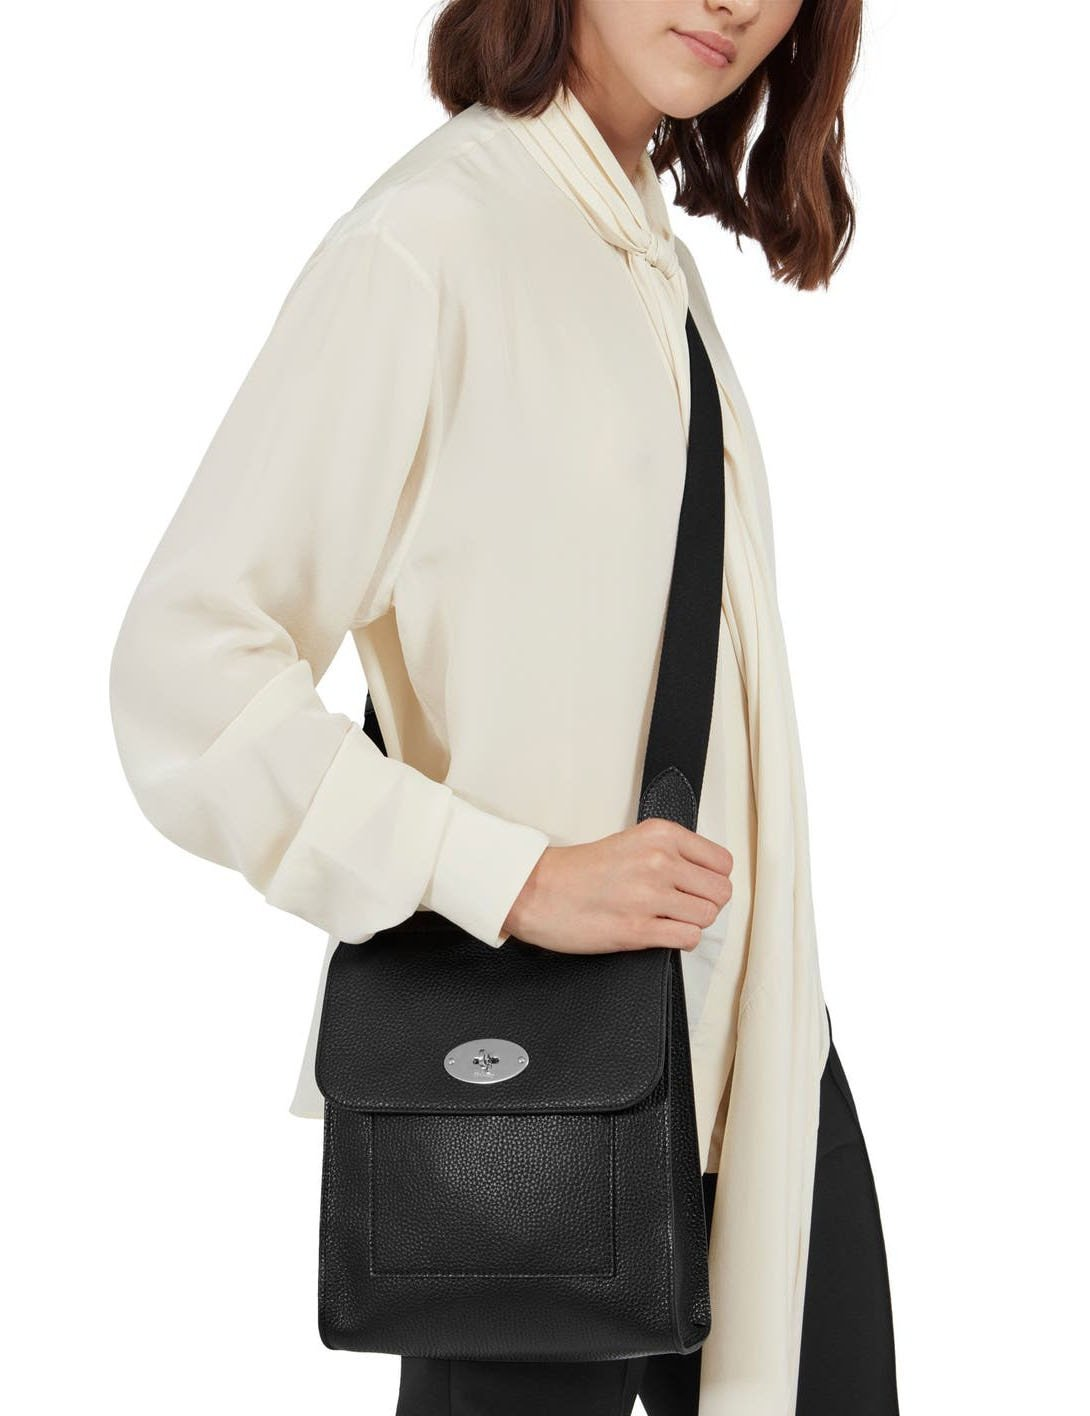 Available in various sizes and colors, the Antony takes inspiration from traditional postman bags